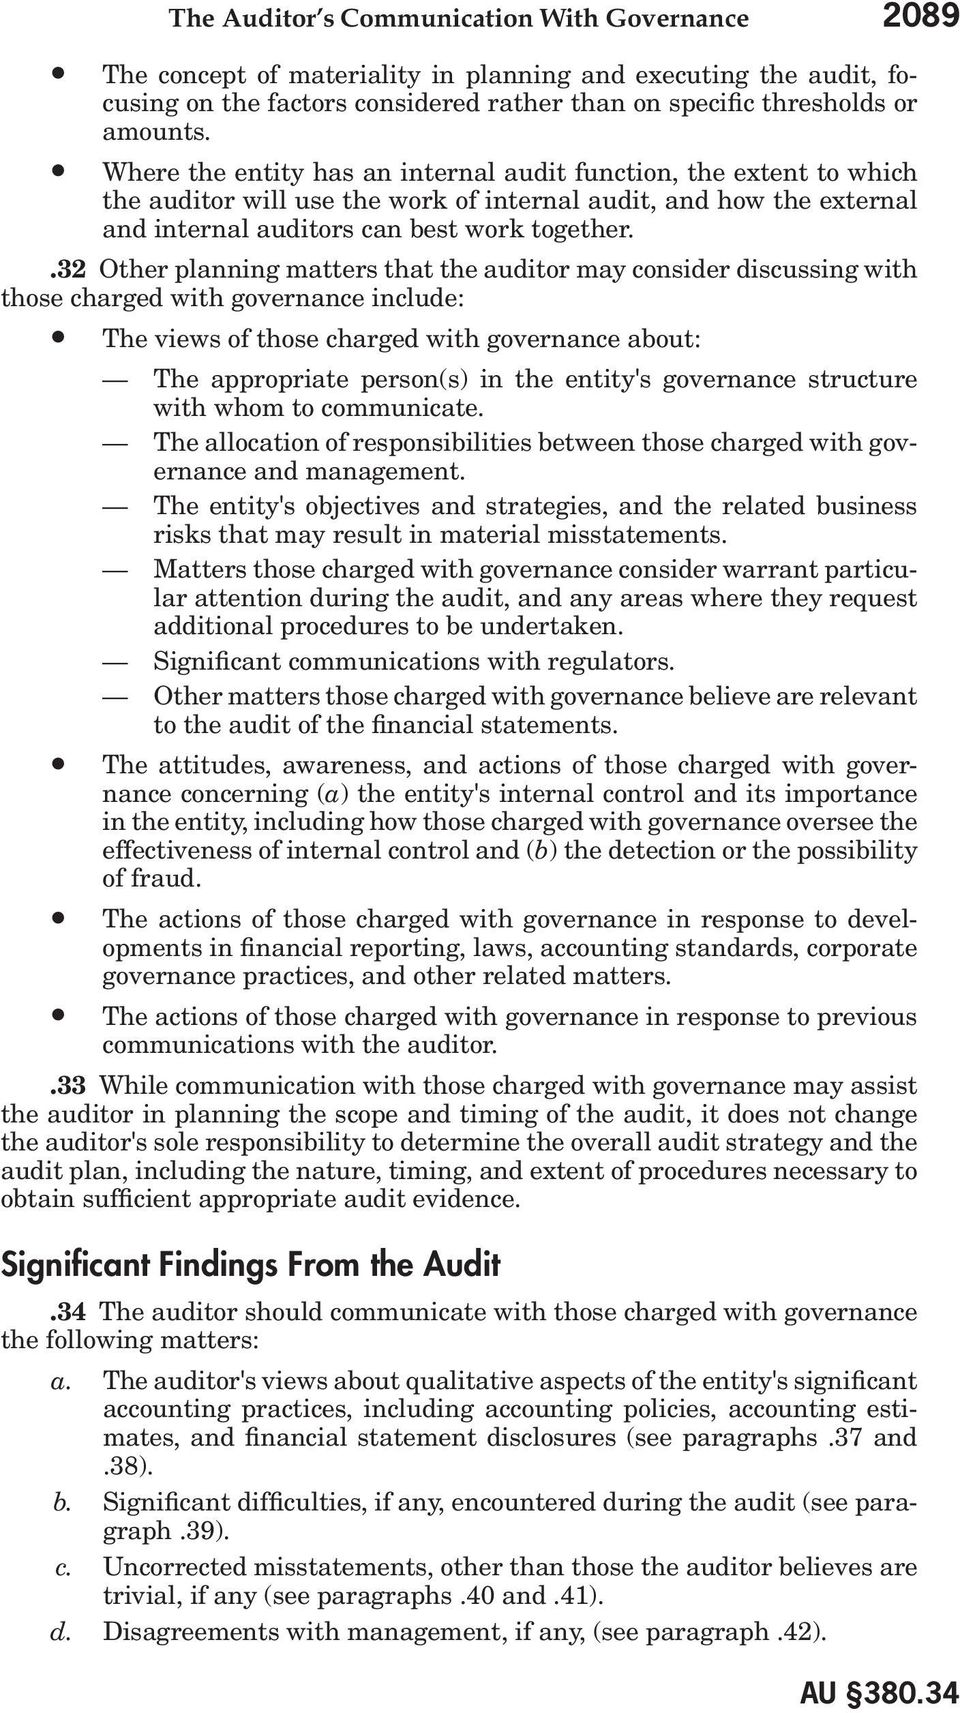 .32 Other planning matters that the auditor may consider discussing with those charged with governance include: The views of those charged with governance about: The appropriate person(s) in the